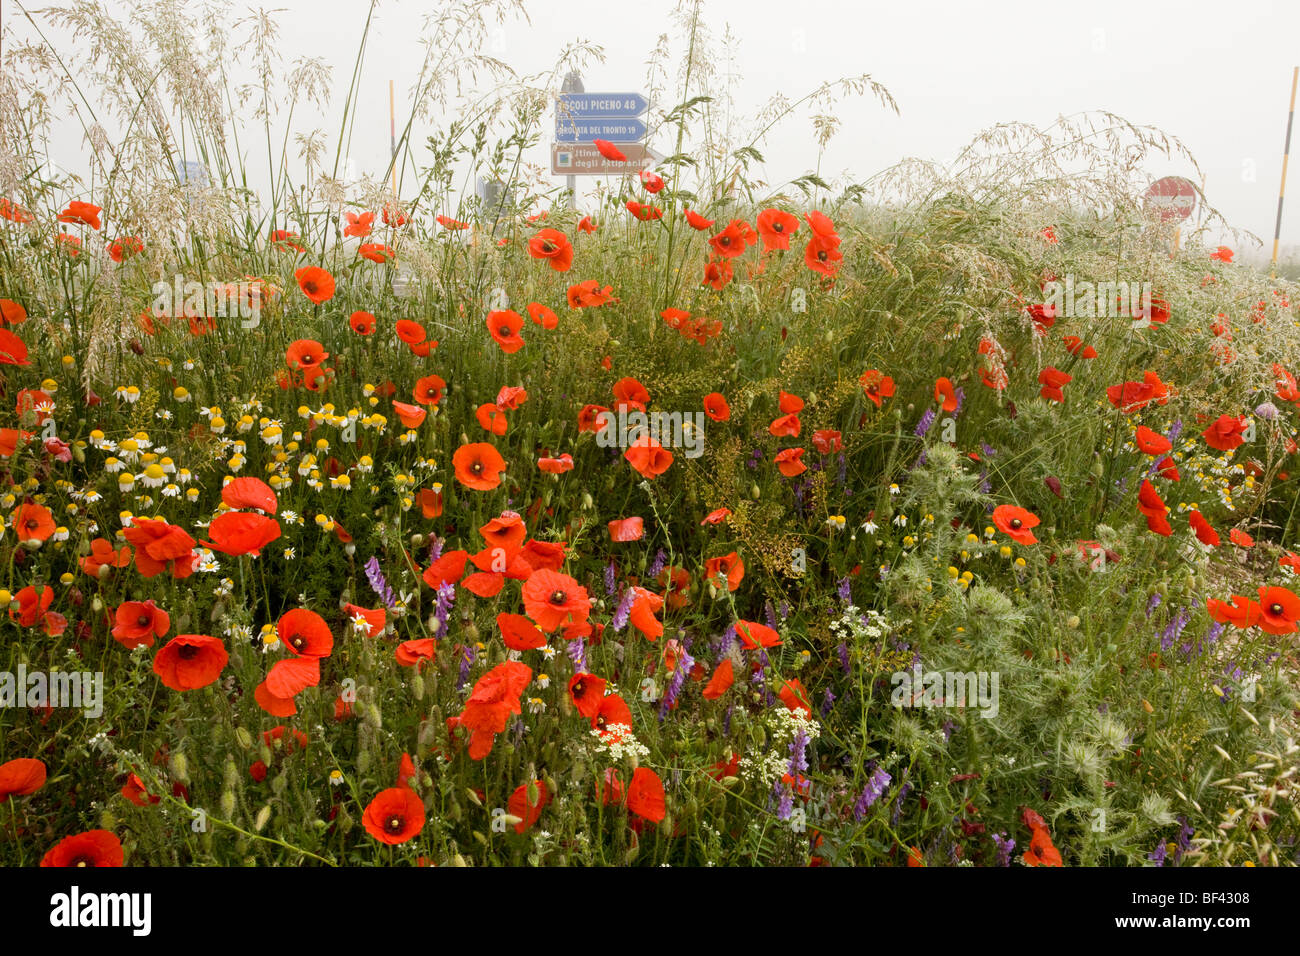 poppies Papaver rhoeas and other cornfield weeds,- with road signs beyond - on the Grande Piano, Monte Sibillini - Stock Image